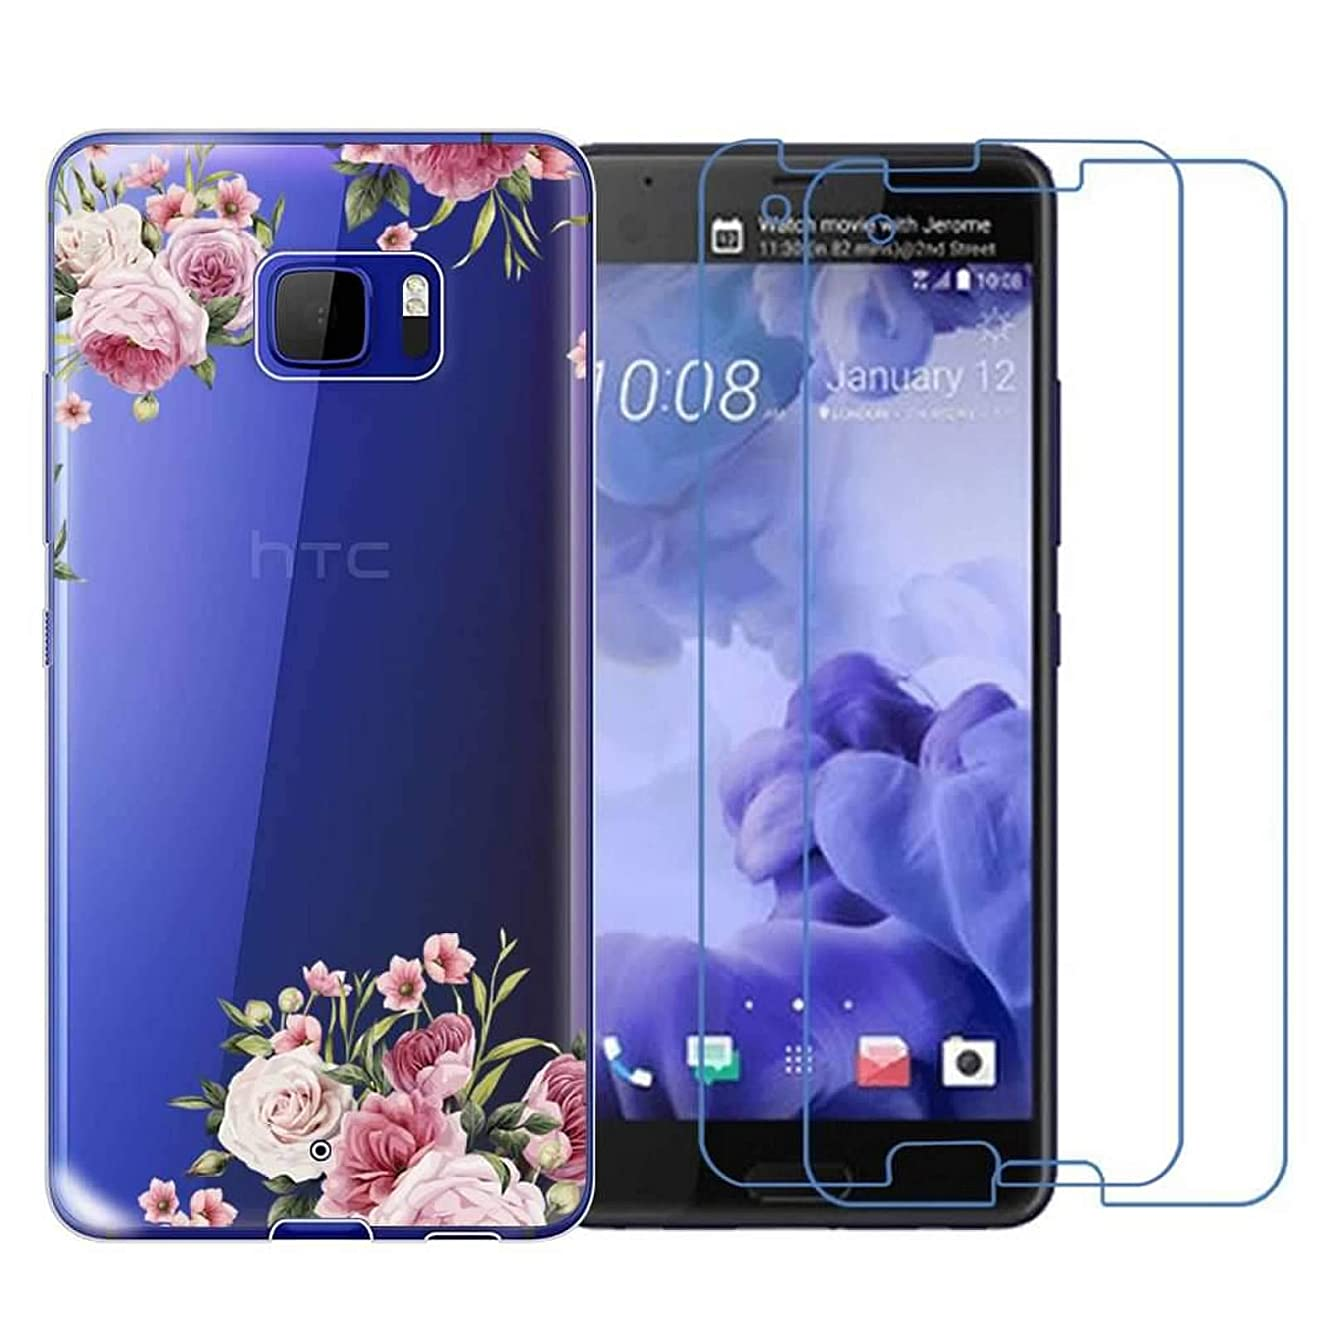 HTC U Ultra Case with 2 Pack Glass Screen Protector Phone Case for Men Women Girls Clear Soft TPU with Protective Bumper Cover Case for HTC U Ultra-Flower